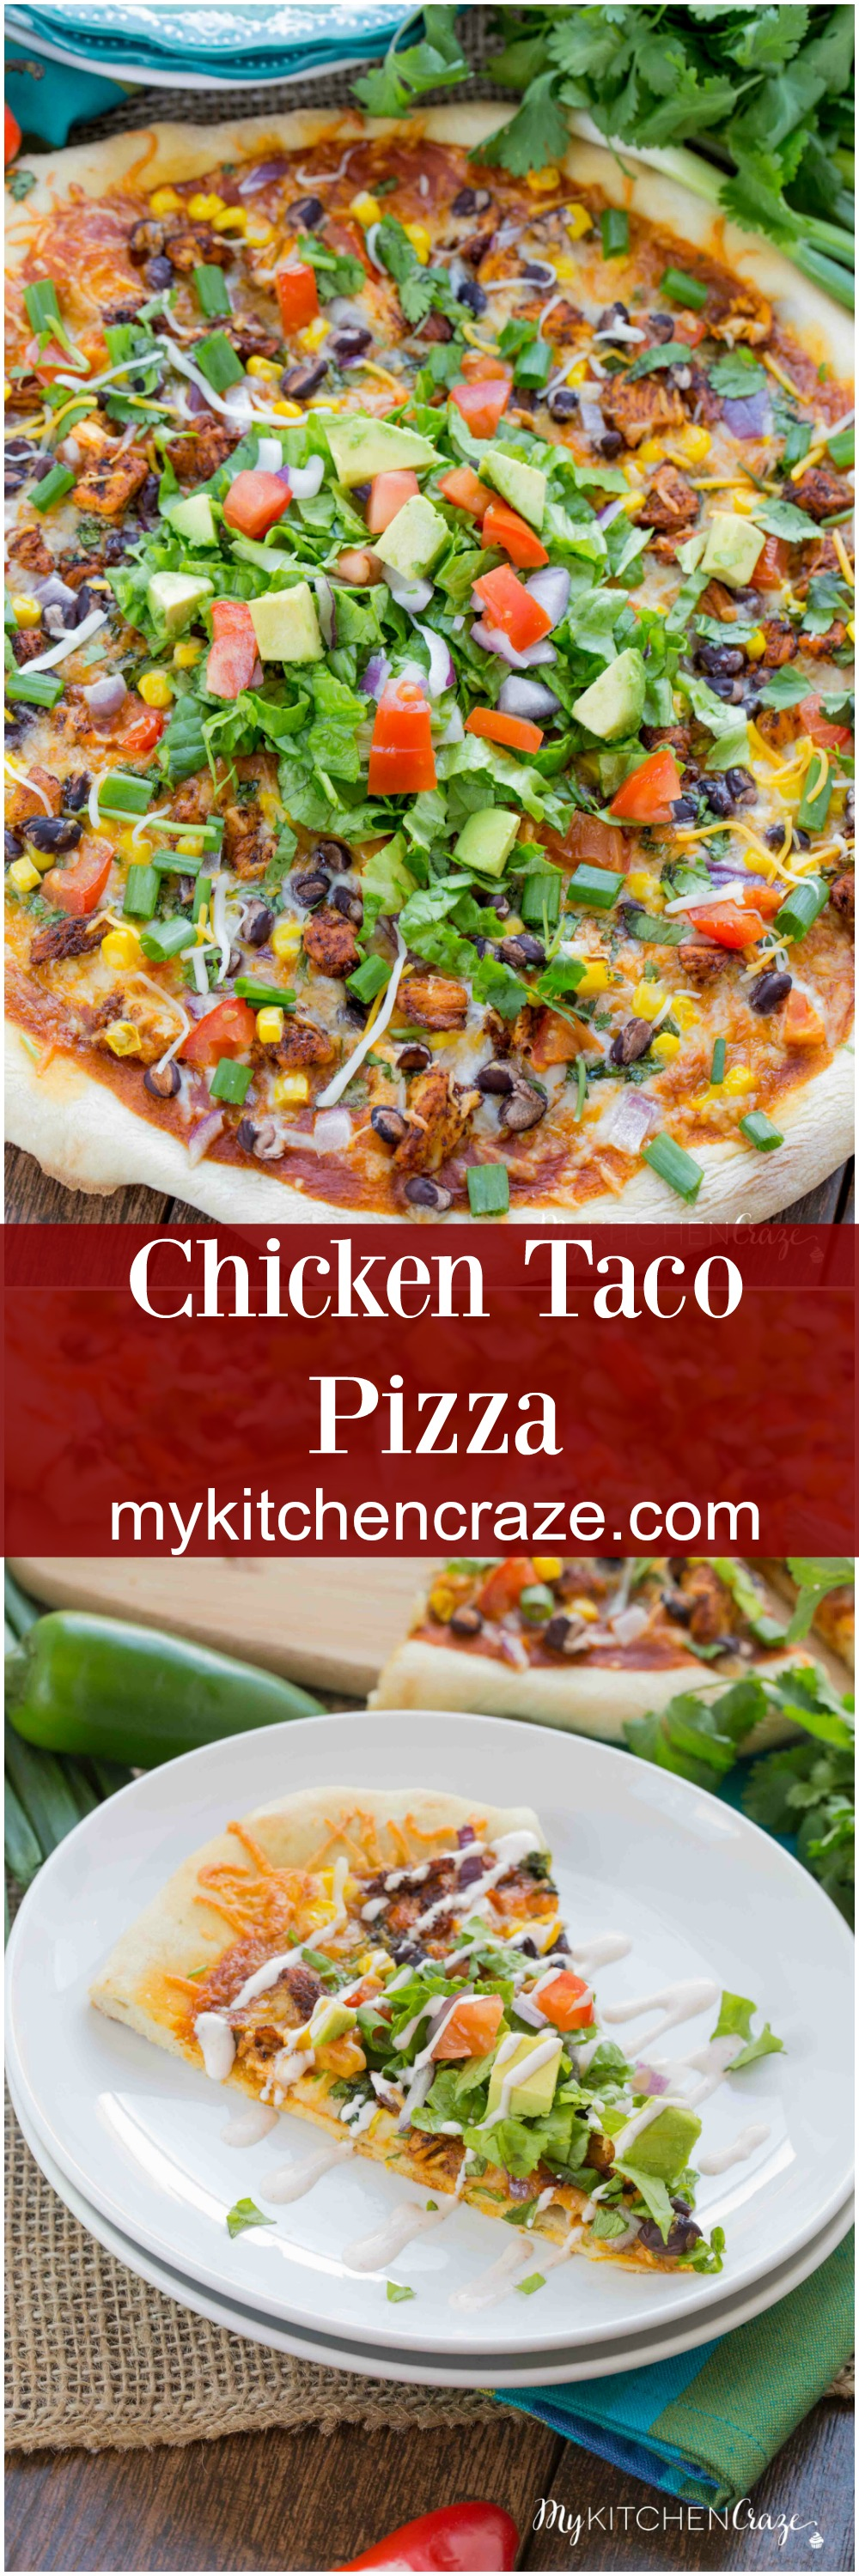 Chicken Taco Pizza ~ mykitchencraze.com ~ A fun twist on pizza night and all done within 30 minutes. Perfect family dinner recipe!